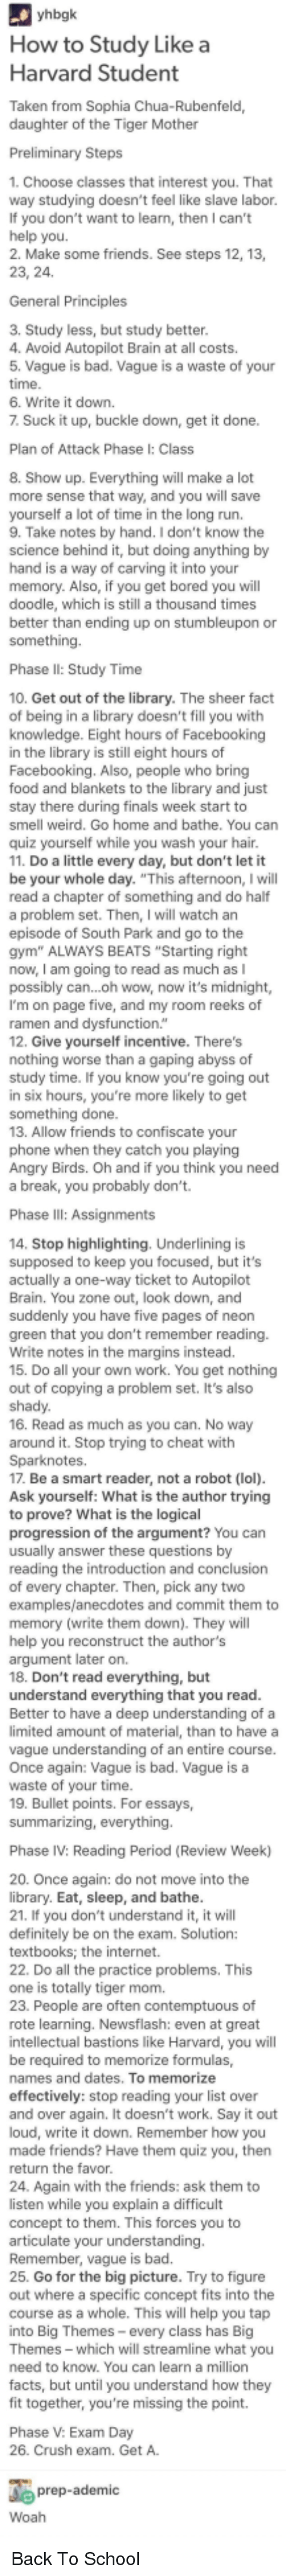 "Angry Birds, Bad, and Bored: How to Study Likea  Harvard Student  Taken from Sophia Chua-Rubenfeld,  daughter of the Tiger Mother  1. Choose classes that interest you. That  way studying doesn't feel like slave labor.  If you don't want to learn, then I can't  2. Make some friends. See steps 12, 13,  General Principles  3. Study less, but study better  4. Avoid Autopilot Brain at all costs.  5. Vague is bad. Vague is a waste of your  time  6. Write it down.  7 Suck it up, buckle down, get it done.  Plan of Attack Phase I: Class  8. Show up. Everything will make a lot  more sense that way, and you will save  yourself a lot of time in the long run.  9. Take notes by hand. I don't know the  science behind it, but doing anything by  hand is a way of carving it into your  memory. Also, if you get bored you will  doodle, which is still a thousand times  better than ending up on stumbleupon or  something.  Phase II: Study Time  10. Get out of the library. The sheer fact  of being in a library doesn't fill you with  knowledge. Eight hours of Facebooking  in the library is still eight hours of  Facebooking. Also, people who bring  food and blankets to the library and just  stay there during finals week start to  smell weird. Go home and bathe. You can  quiz yourself while you wash your hair  11. Do a little every day, but don't let it  be your whole day. ""This afternoon, I will  0  a problem set. Then, I will watch an  episode of South Park and go to the  gym"" ALWAYS BEATS ""Starting right  now, I am going to read as much as I  possibly can...oh wow, now it's midnight,  I'm on page five, and my room reeks of  ramen  12. Give yourself incentive. There's  function  worse  abyss  study time. If you know you're going out  in six hours, you're more likely to get  something done.  13. Allow friends to confiscate your  phone when they catch you playing  Angry Birds. Oh and if you think you need  a break, you probably don't.  Phase  14. Stop highlighting. Underlining is  supposed to keep you focused, but it's  actually a one-way ticket to Autopilot  Brain. You zone out, look down, and  suddenly you have five pages of neon  green that you don't remember reading  Write notes in the margins instead.  15. Do all your own work. You get nothing  out of copying a problem set. It's also  shady.  16. Read as much as you can. No way  around it. Stop trying to cheat with  Sparknotes.  17. Be a smart reader, not a robot (lol)  Ask yourself: What is the author trying  to prove? What is the logical  progression of the argument? You can  reading the introduction and conclusion  of every chapter. Then, pick any two  examples/anecdotes and commit them to  memory (write them down). They will  help you reconstruct the author's  argument later on.  18. Don't read everything, but  understand everything that you read  Better to have a deep understanding of a  limited amount of material, than to have a  vague understanding of an entire course.  Once again: Vague is bad. Vague is a  waste of your time  19. Bullet points. For essays,  Phase IV: Reading Period (Review Week)  20. Once again: do not move into the  library. Eat, sleep, and bathe  21. If you don't understand it, it will  definitely be on the exam. Solution  tex  22. Do all the practice problems. This  one is totally tiger mom  are  of  rote learning. Newsflash: even at great  intellectual bastions like Harvard, you will  be  names and dates. To memorize  effectively: stop reading your list over  and over again. It doesn't work. Say it out  loud, write it down. Remember how you  made friends? Have them quiz you, then  return the favor  24. Again with the friends: ask them to  listen while you explain a difficult  concept to them. This forces you to  articulate your understanding.  Remember, vague is bad.  25. Go for the big picture. Try to figure  out where a specific concept fits into the  course as a whole. This will help you tap  into Big Themes- every class has Big  Themes - which will streamline what you  need to know. You can learn a million  facts, but until you understand how they  fit together, you're missing the point.  V: Exam Day  26. Crush exam. Get A.  e prep-ademic Back To School"